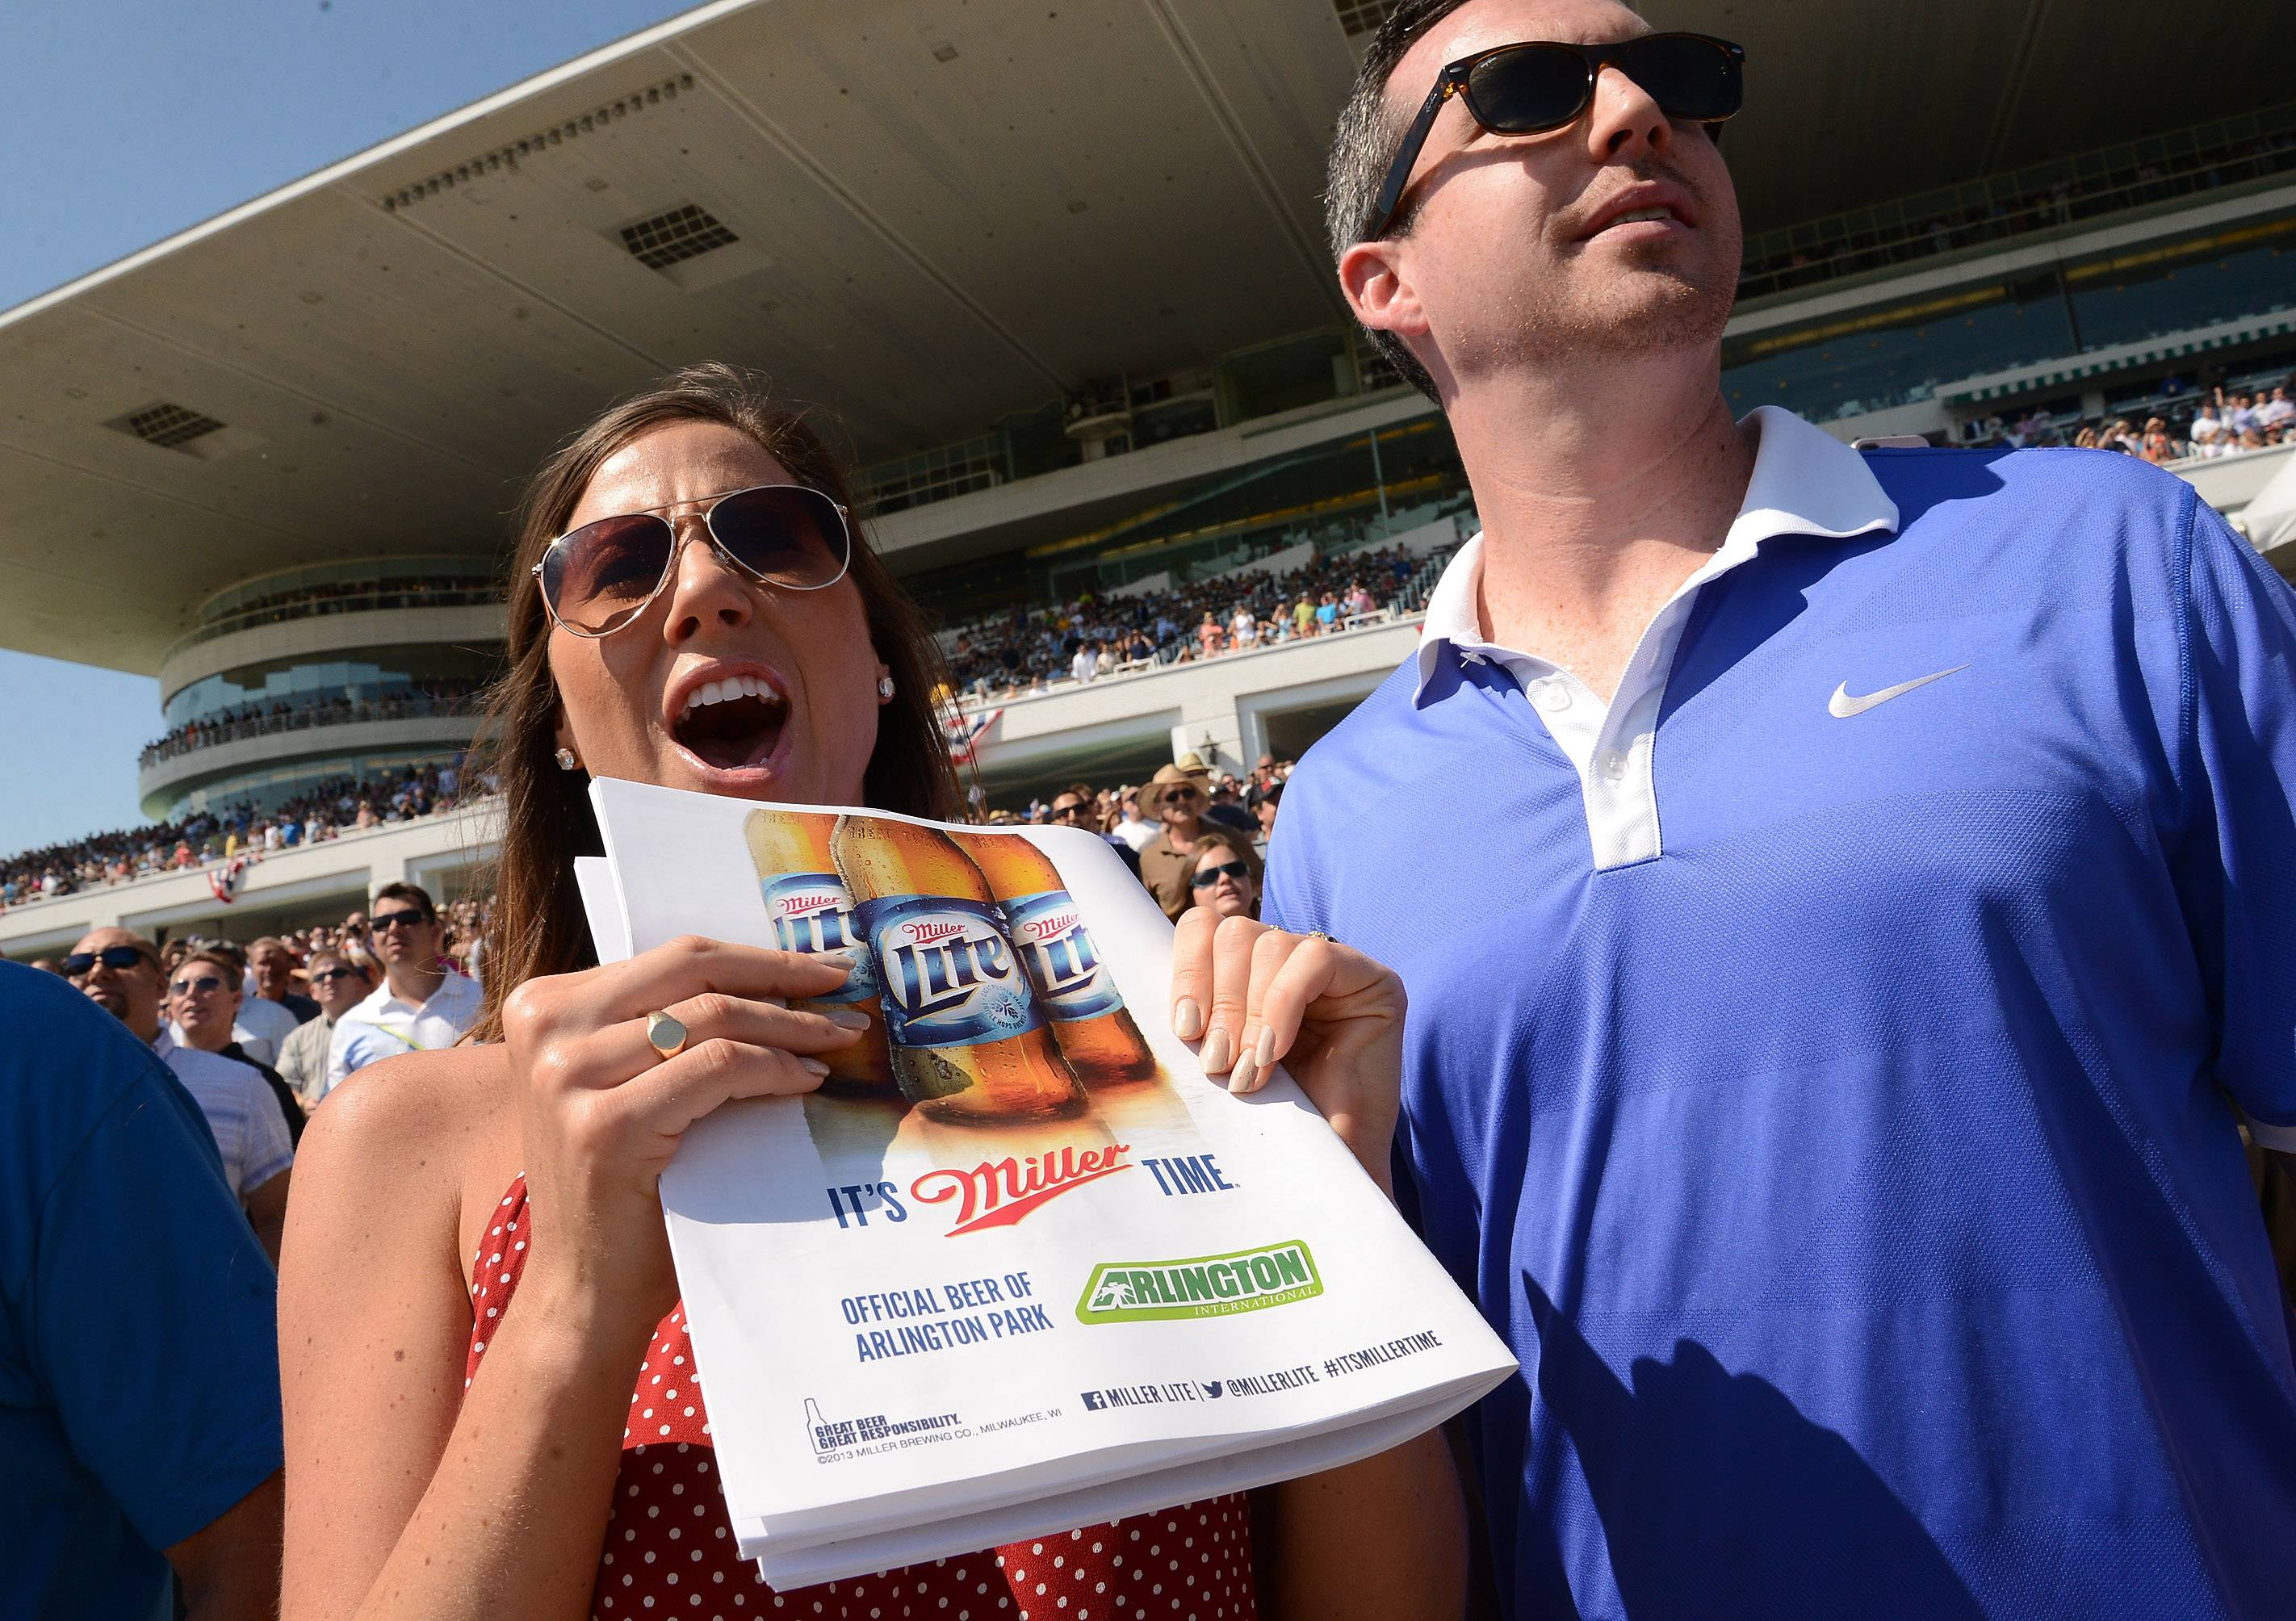 Bridget Comeau and Dan O'Connell, both of Chicago, cheer on their horse during the Arlington International Festival of Racing at Arlington International Racecourse.